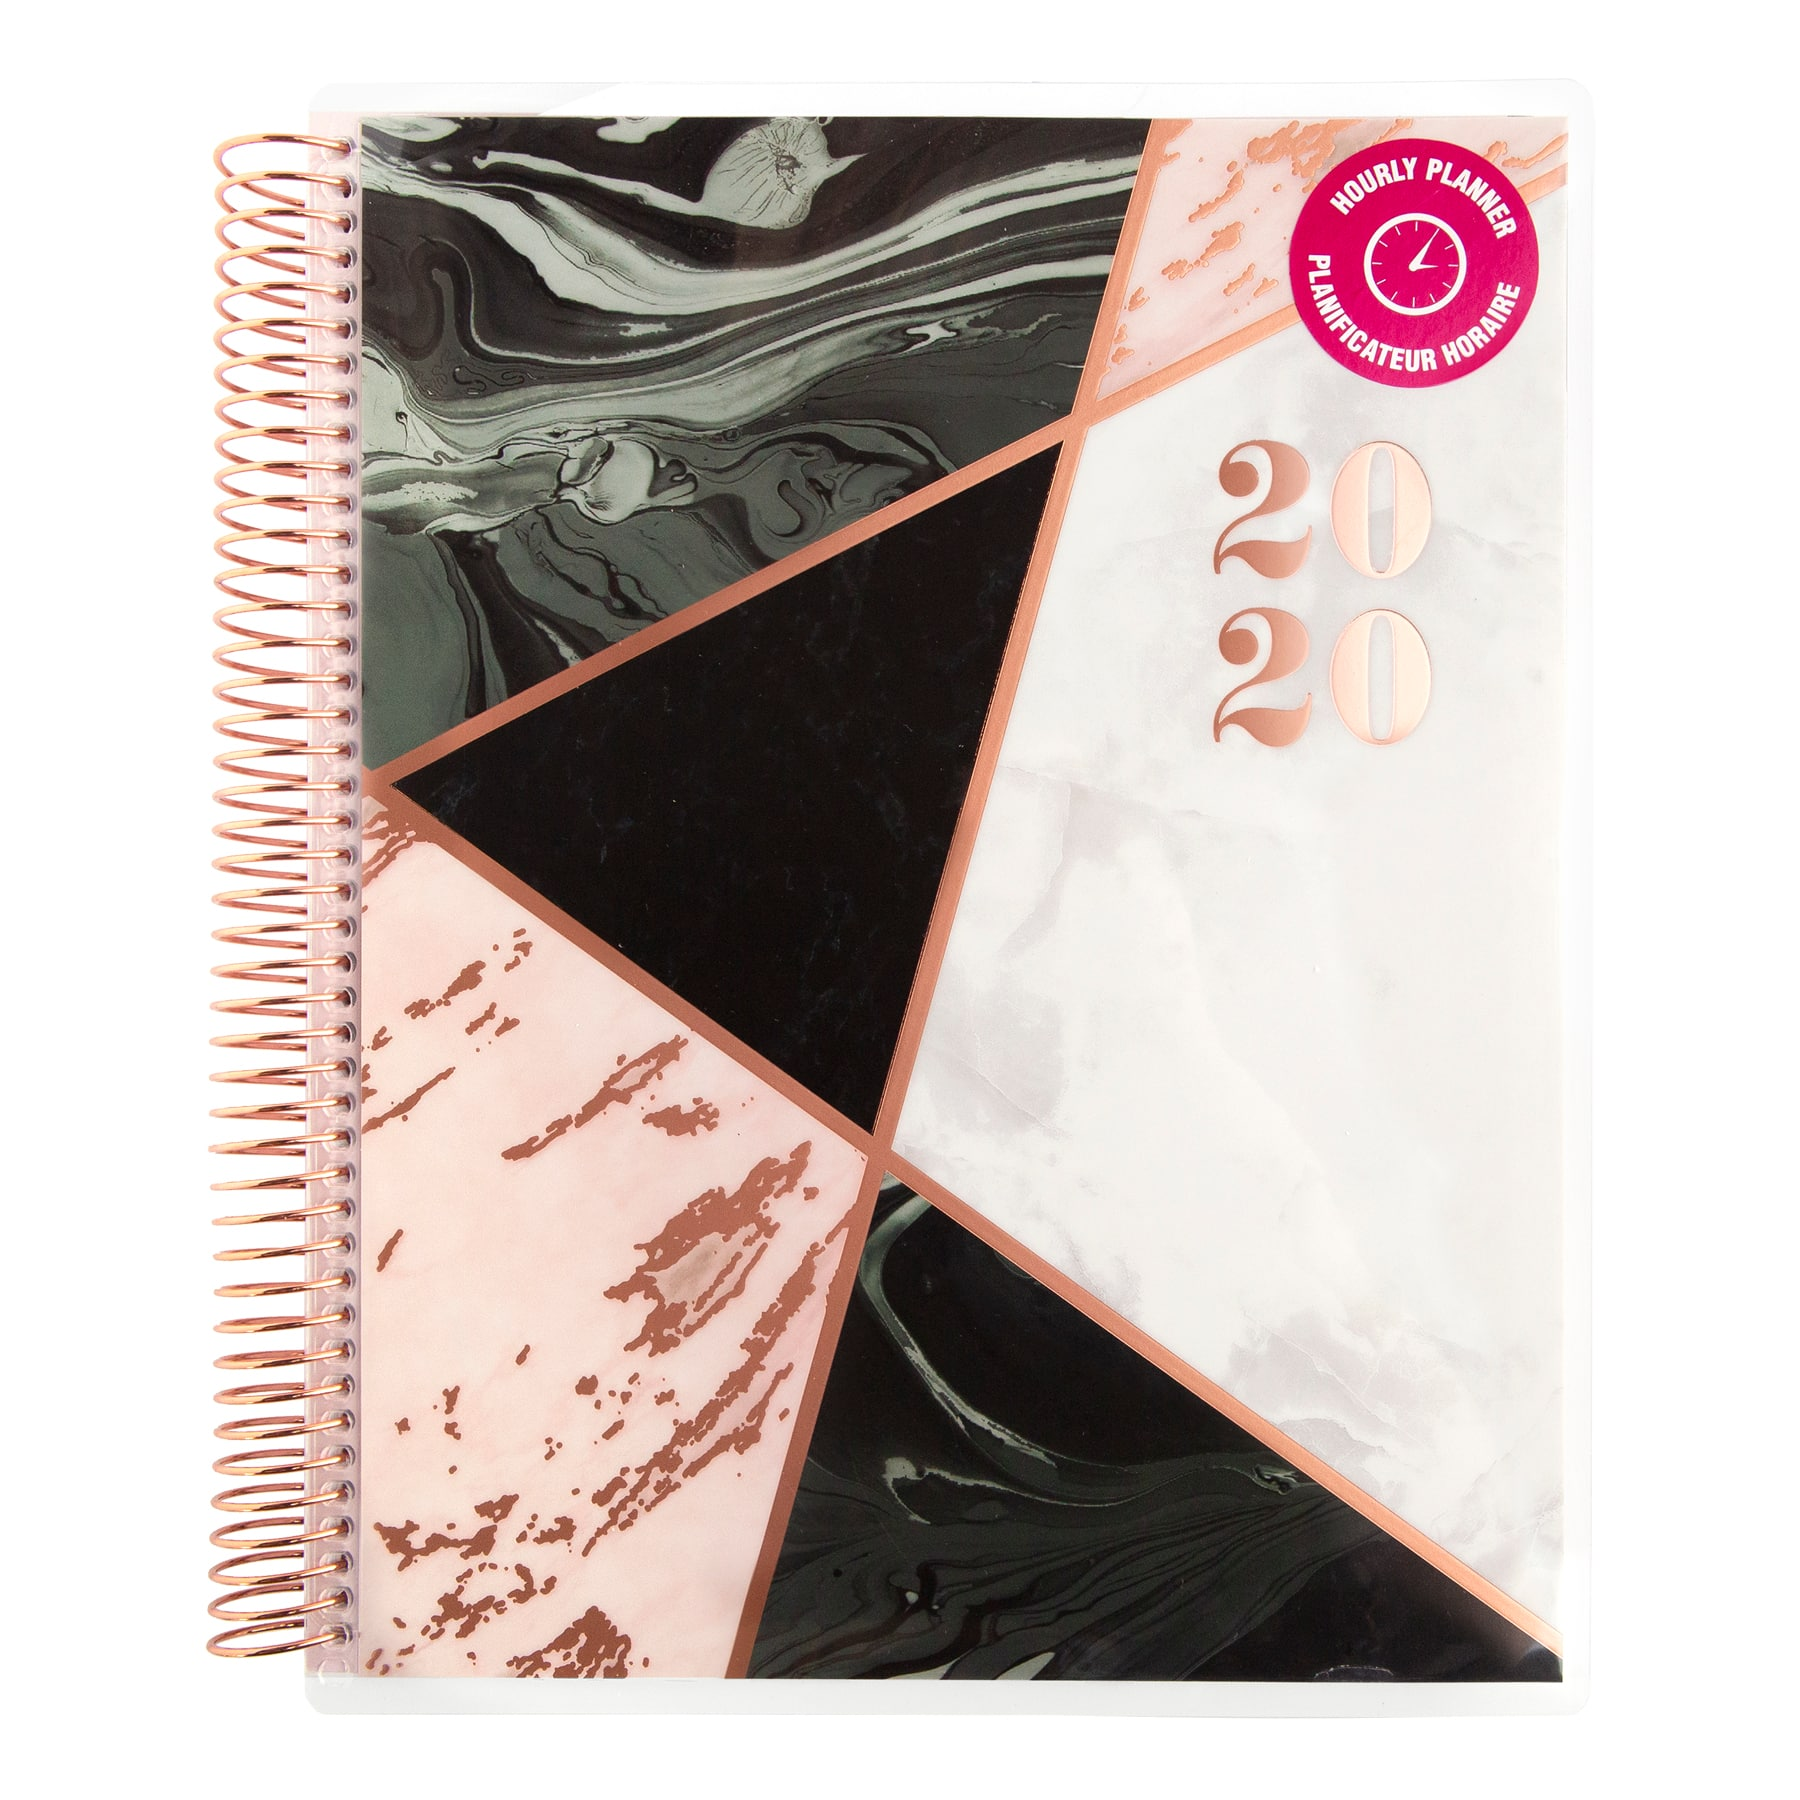 large-hourly-note-taking-spiral-planner-by-recollections by michaels